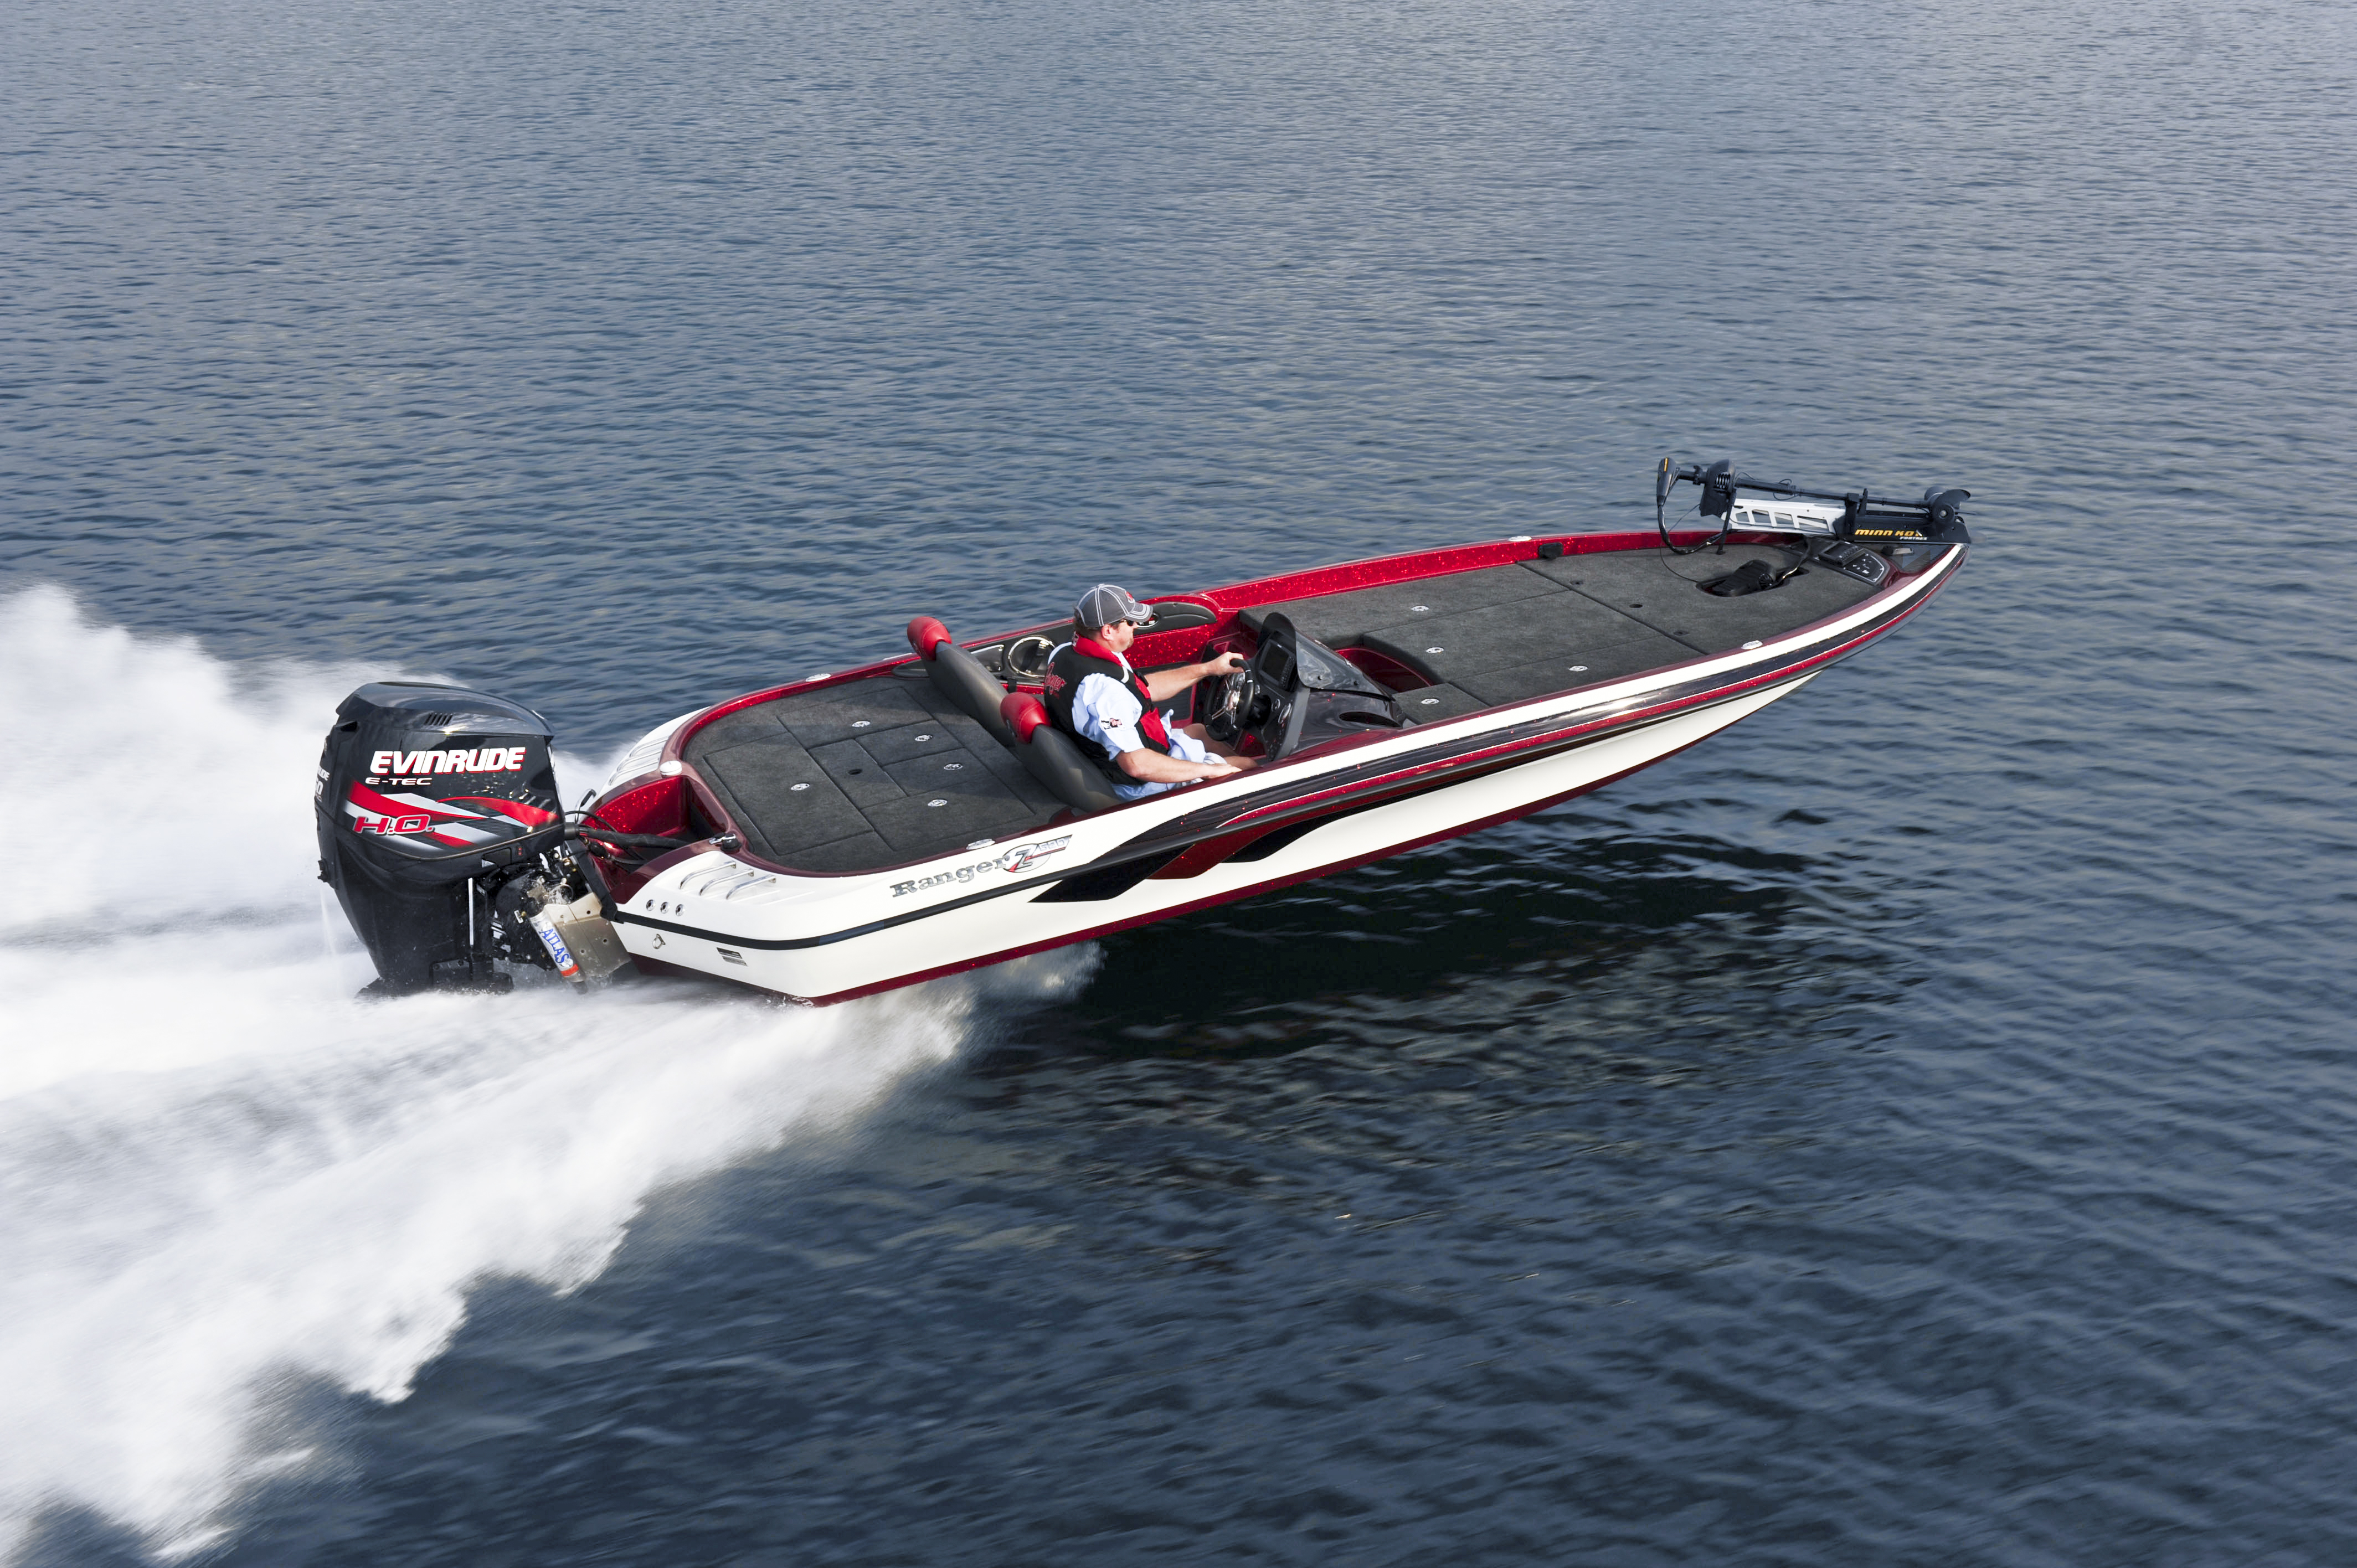 RANGER BOATS' Z520 COMANCHE AND Z119 NAMED TO BEST BUY ...